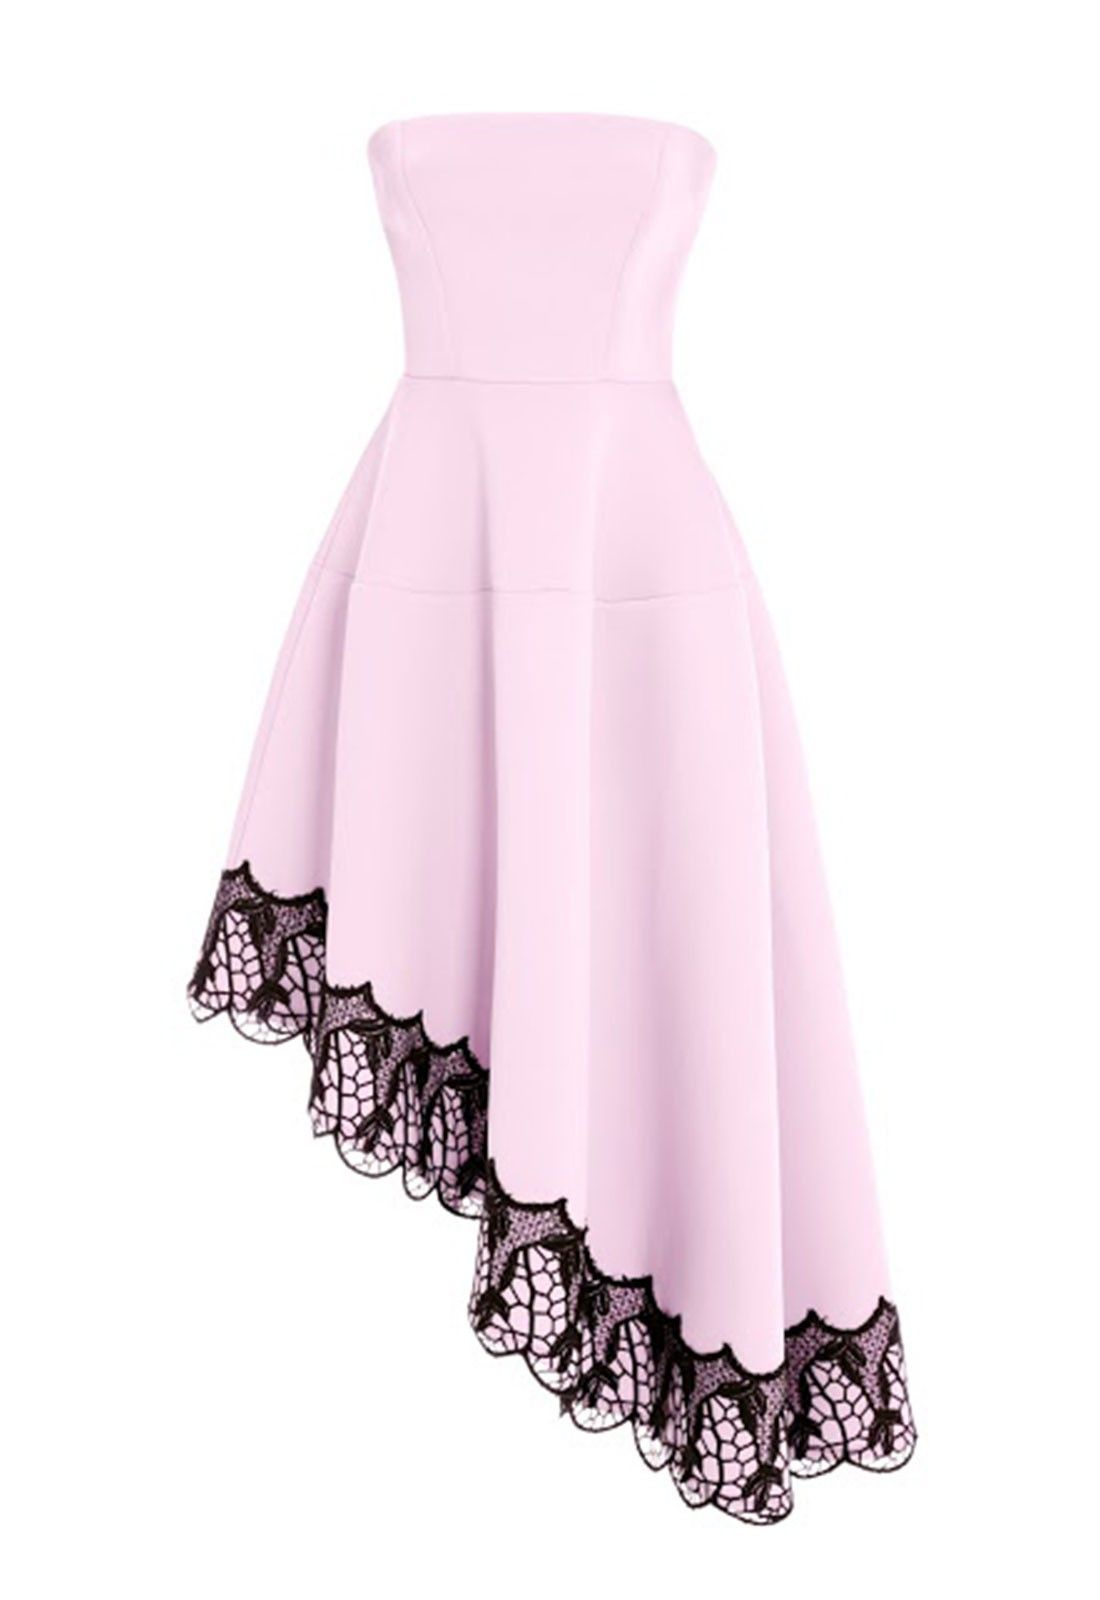 This elegant dress is a perfect option for the races or prom and has